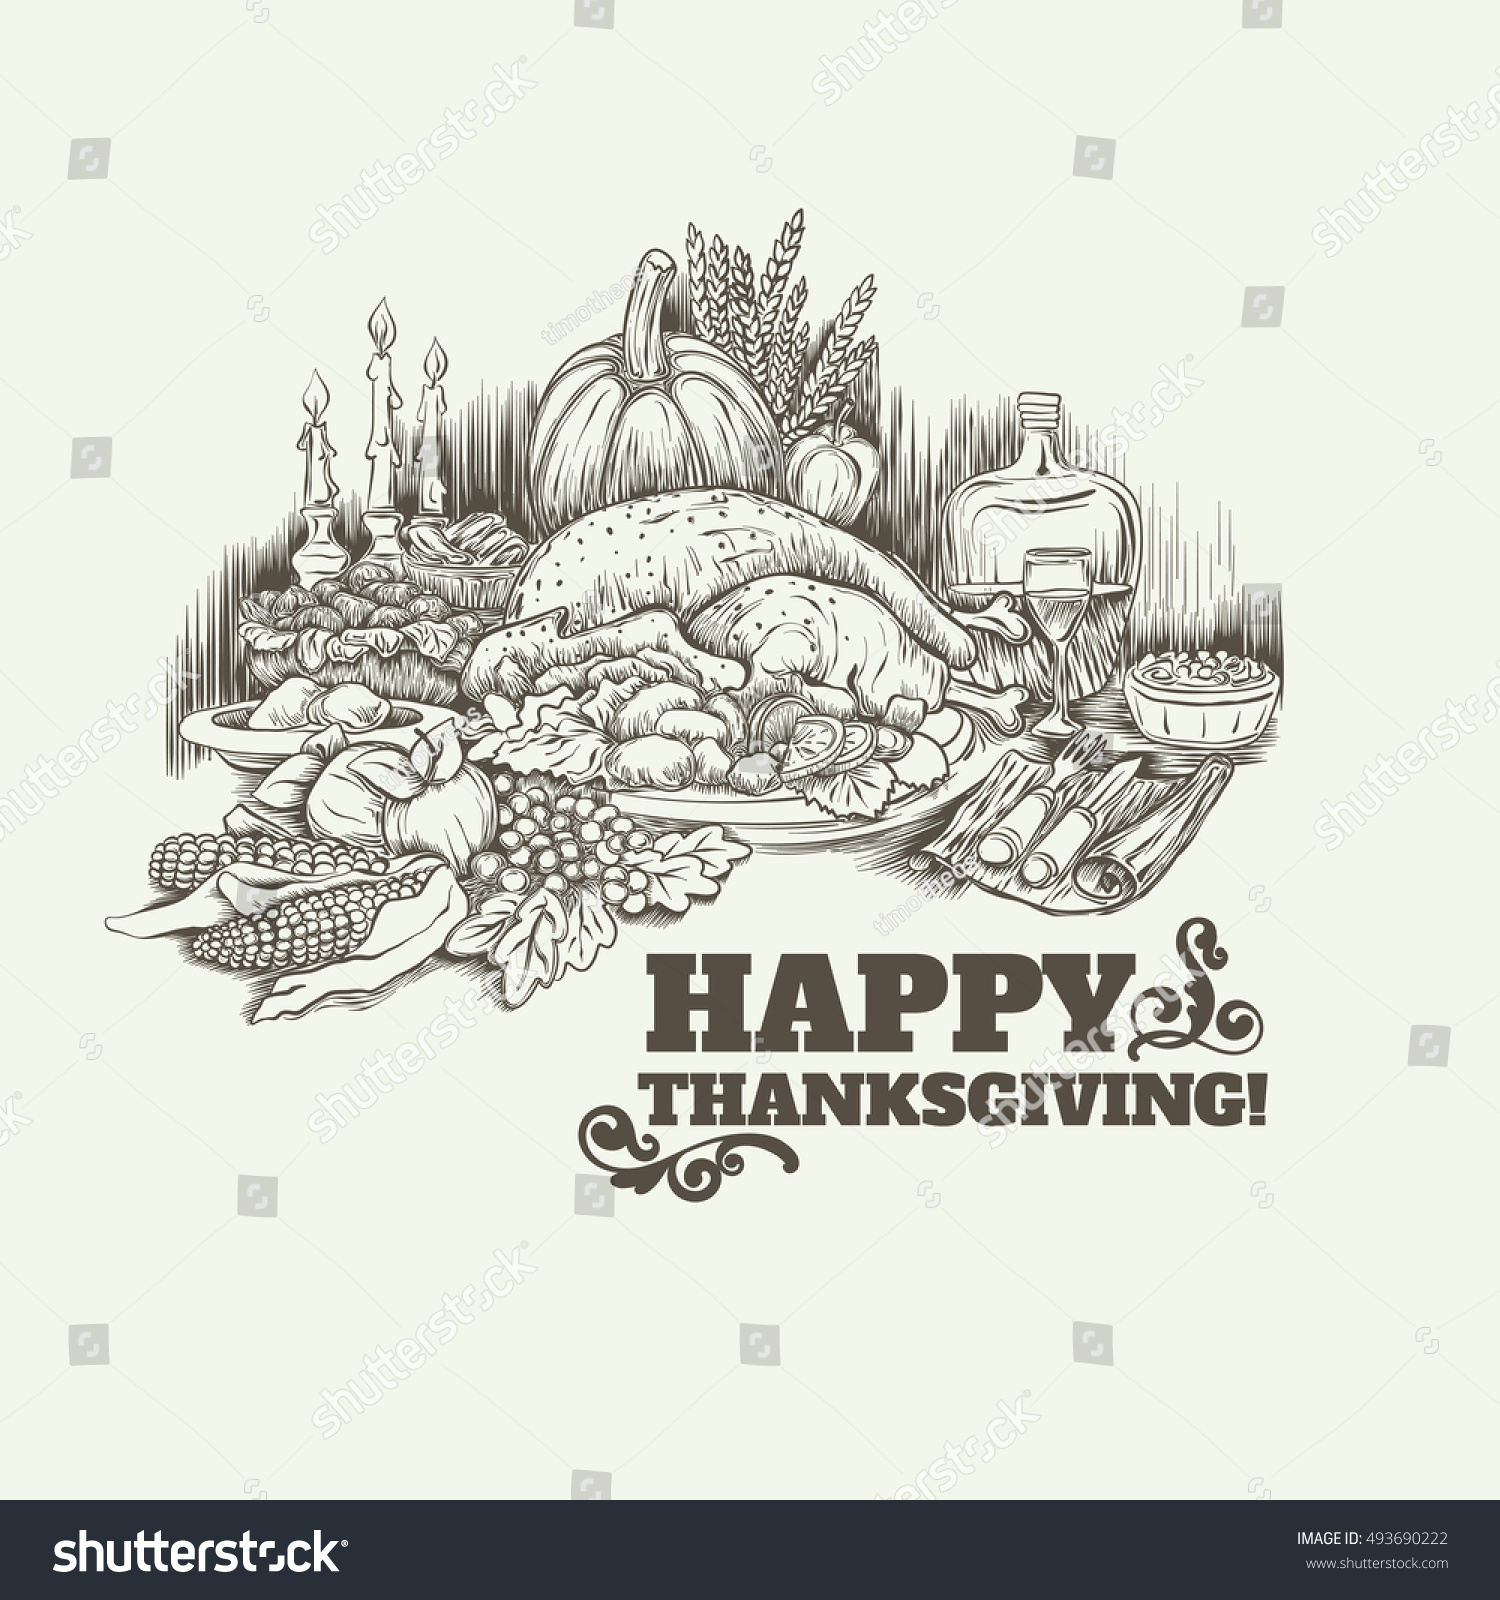 happy thanksgiving day vector card template のベクター画像素材